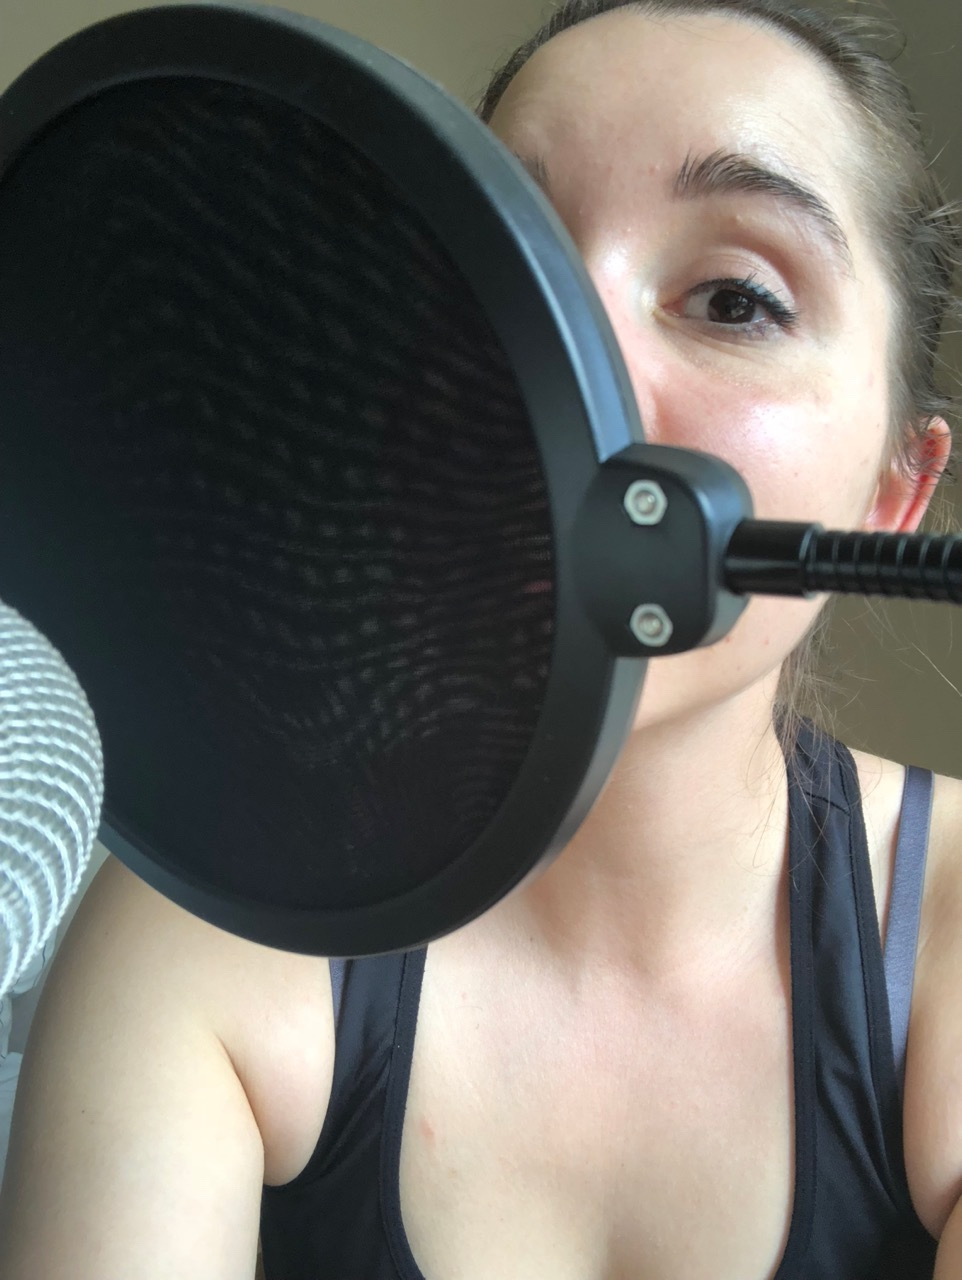 Selfie of me speaking into a pop shield in front of a microphone.